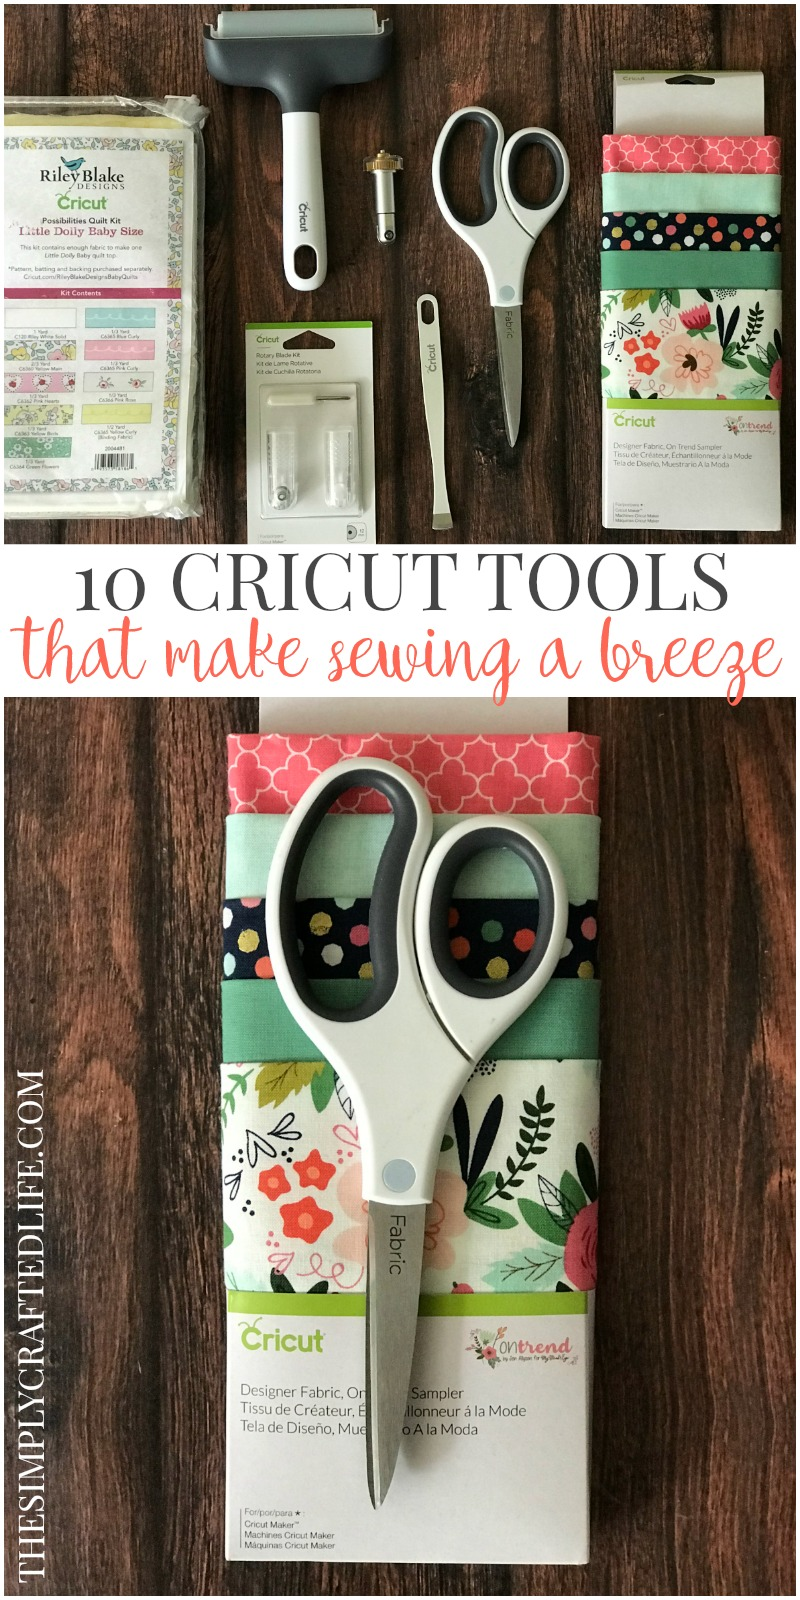 Have you seen all of the Cricut sewing tools that have been released recently? They make sewing a breeze, and this post will introduce you to all of them!